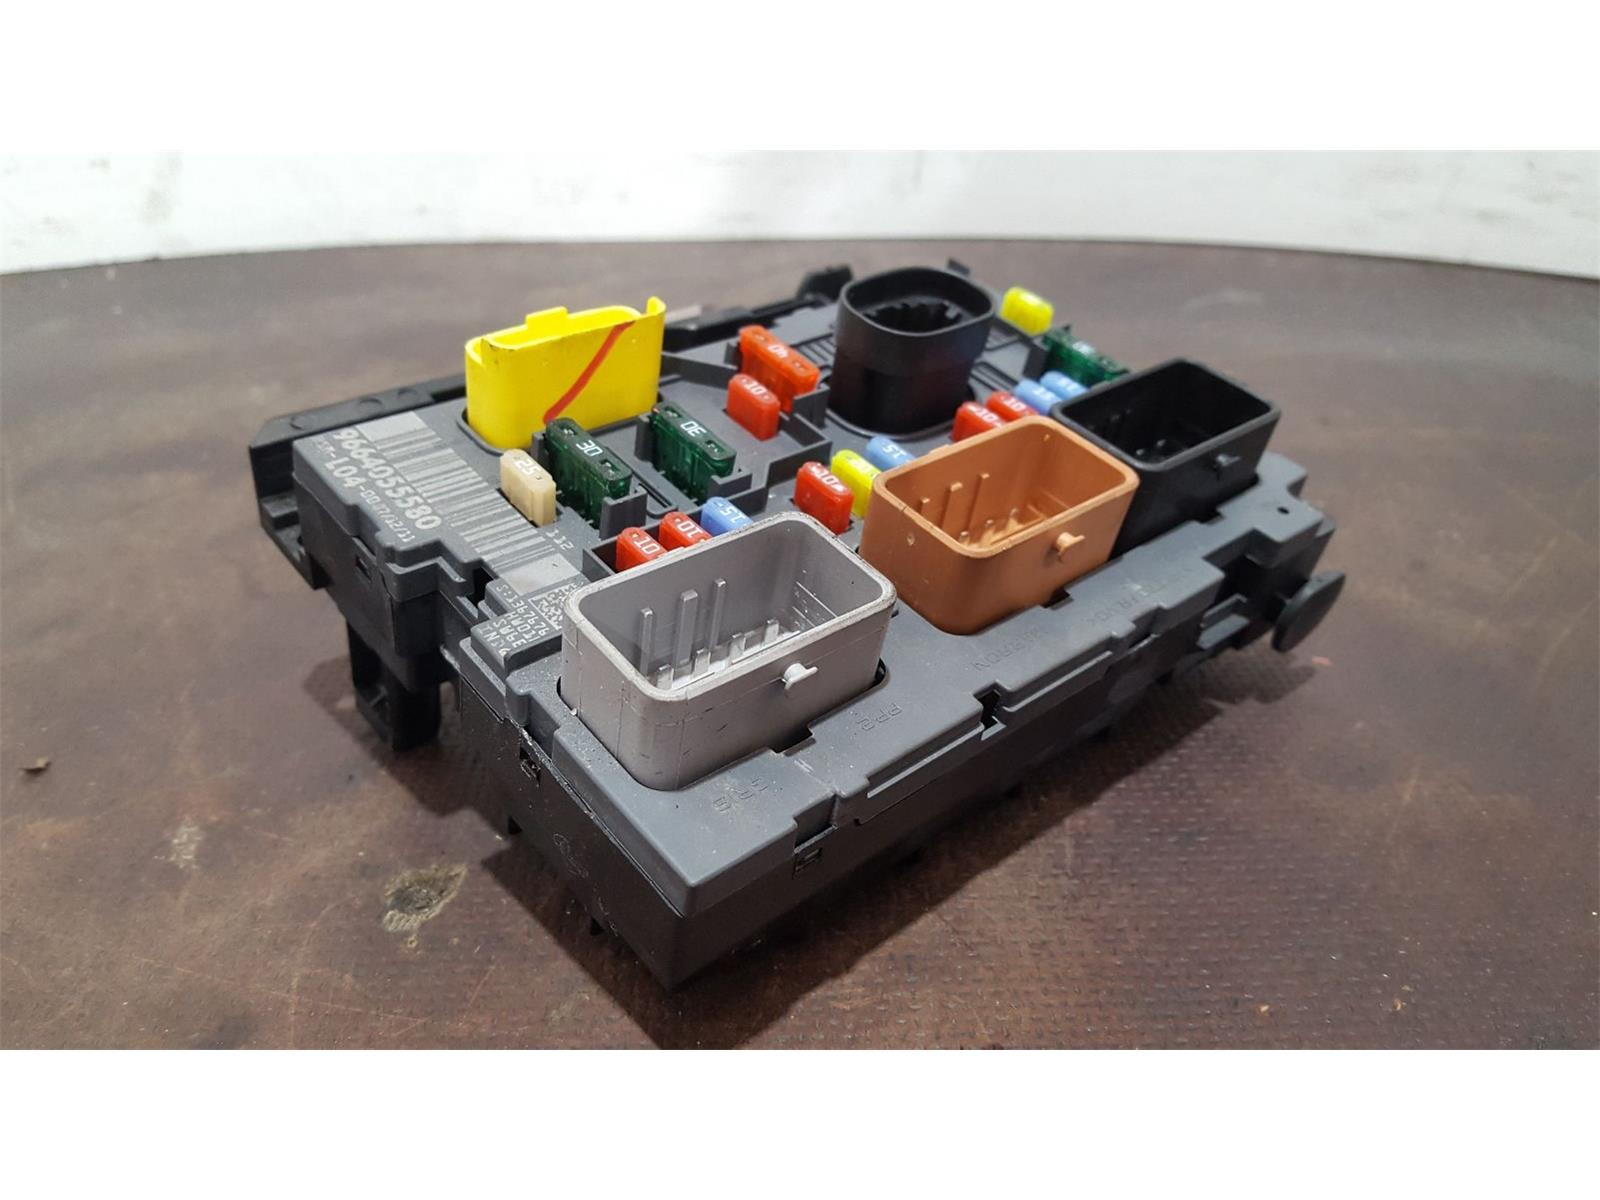 Peugeot 207 2006 To 2009 Gti Fuse And Relay Box 1 Used Spare Headlight Bsi Bmi Bcm Body Control Unit 9664055580